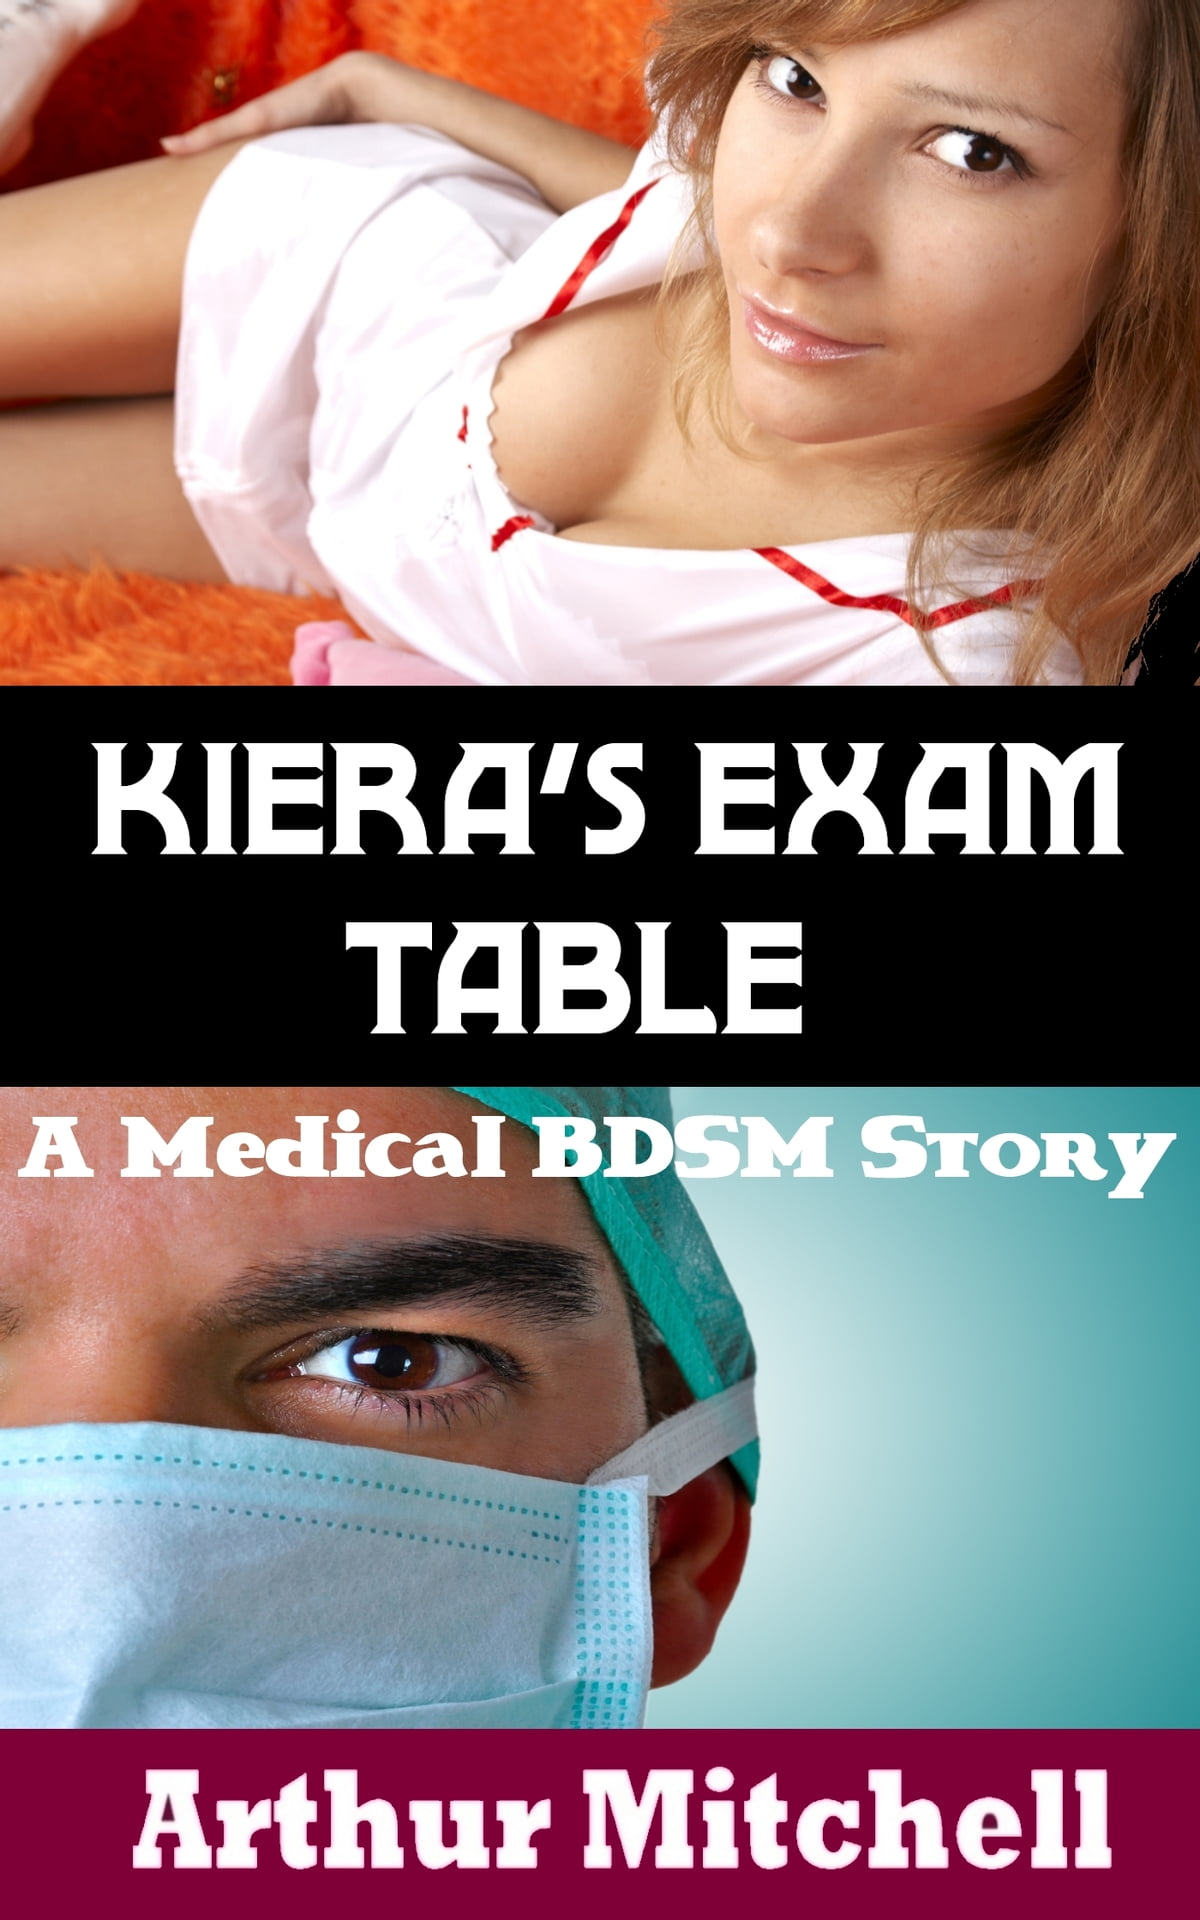 Sex on the exam table